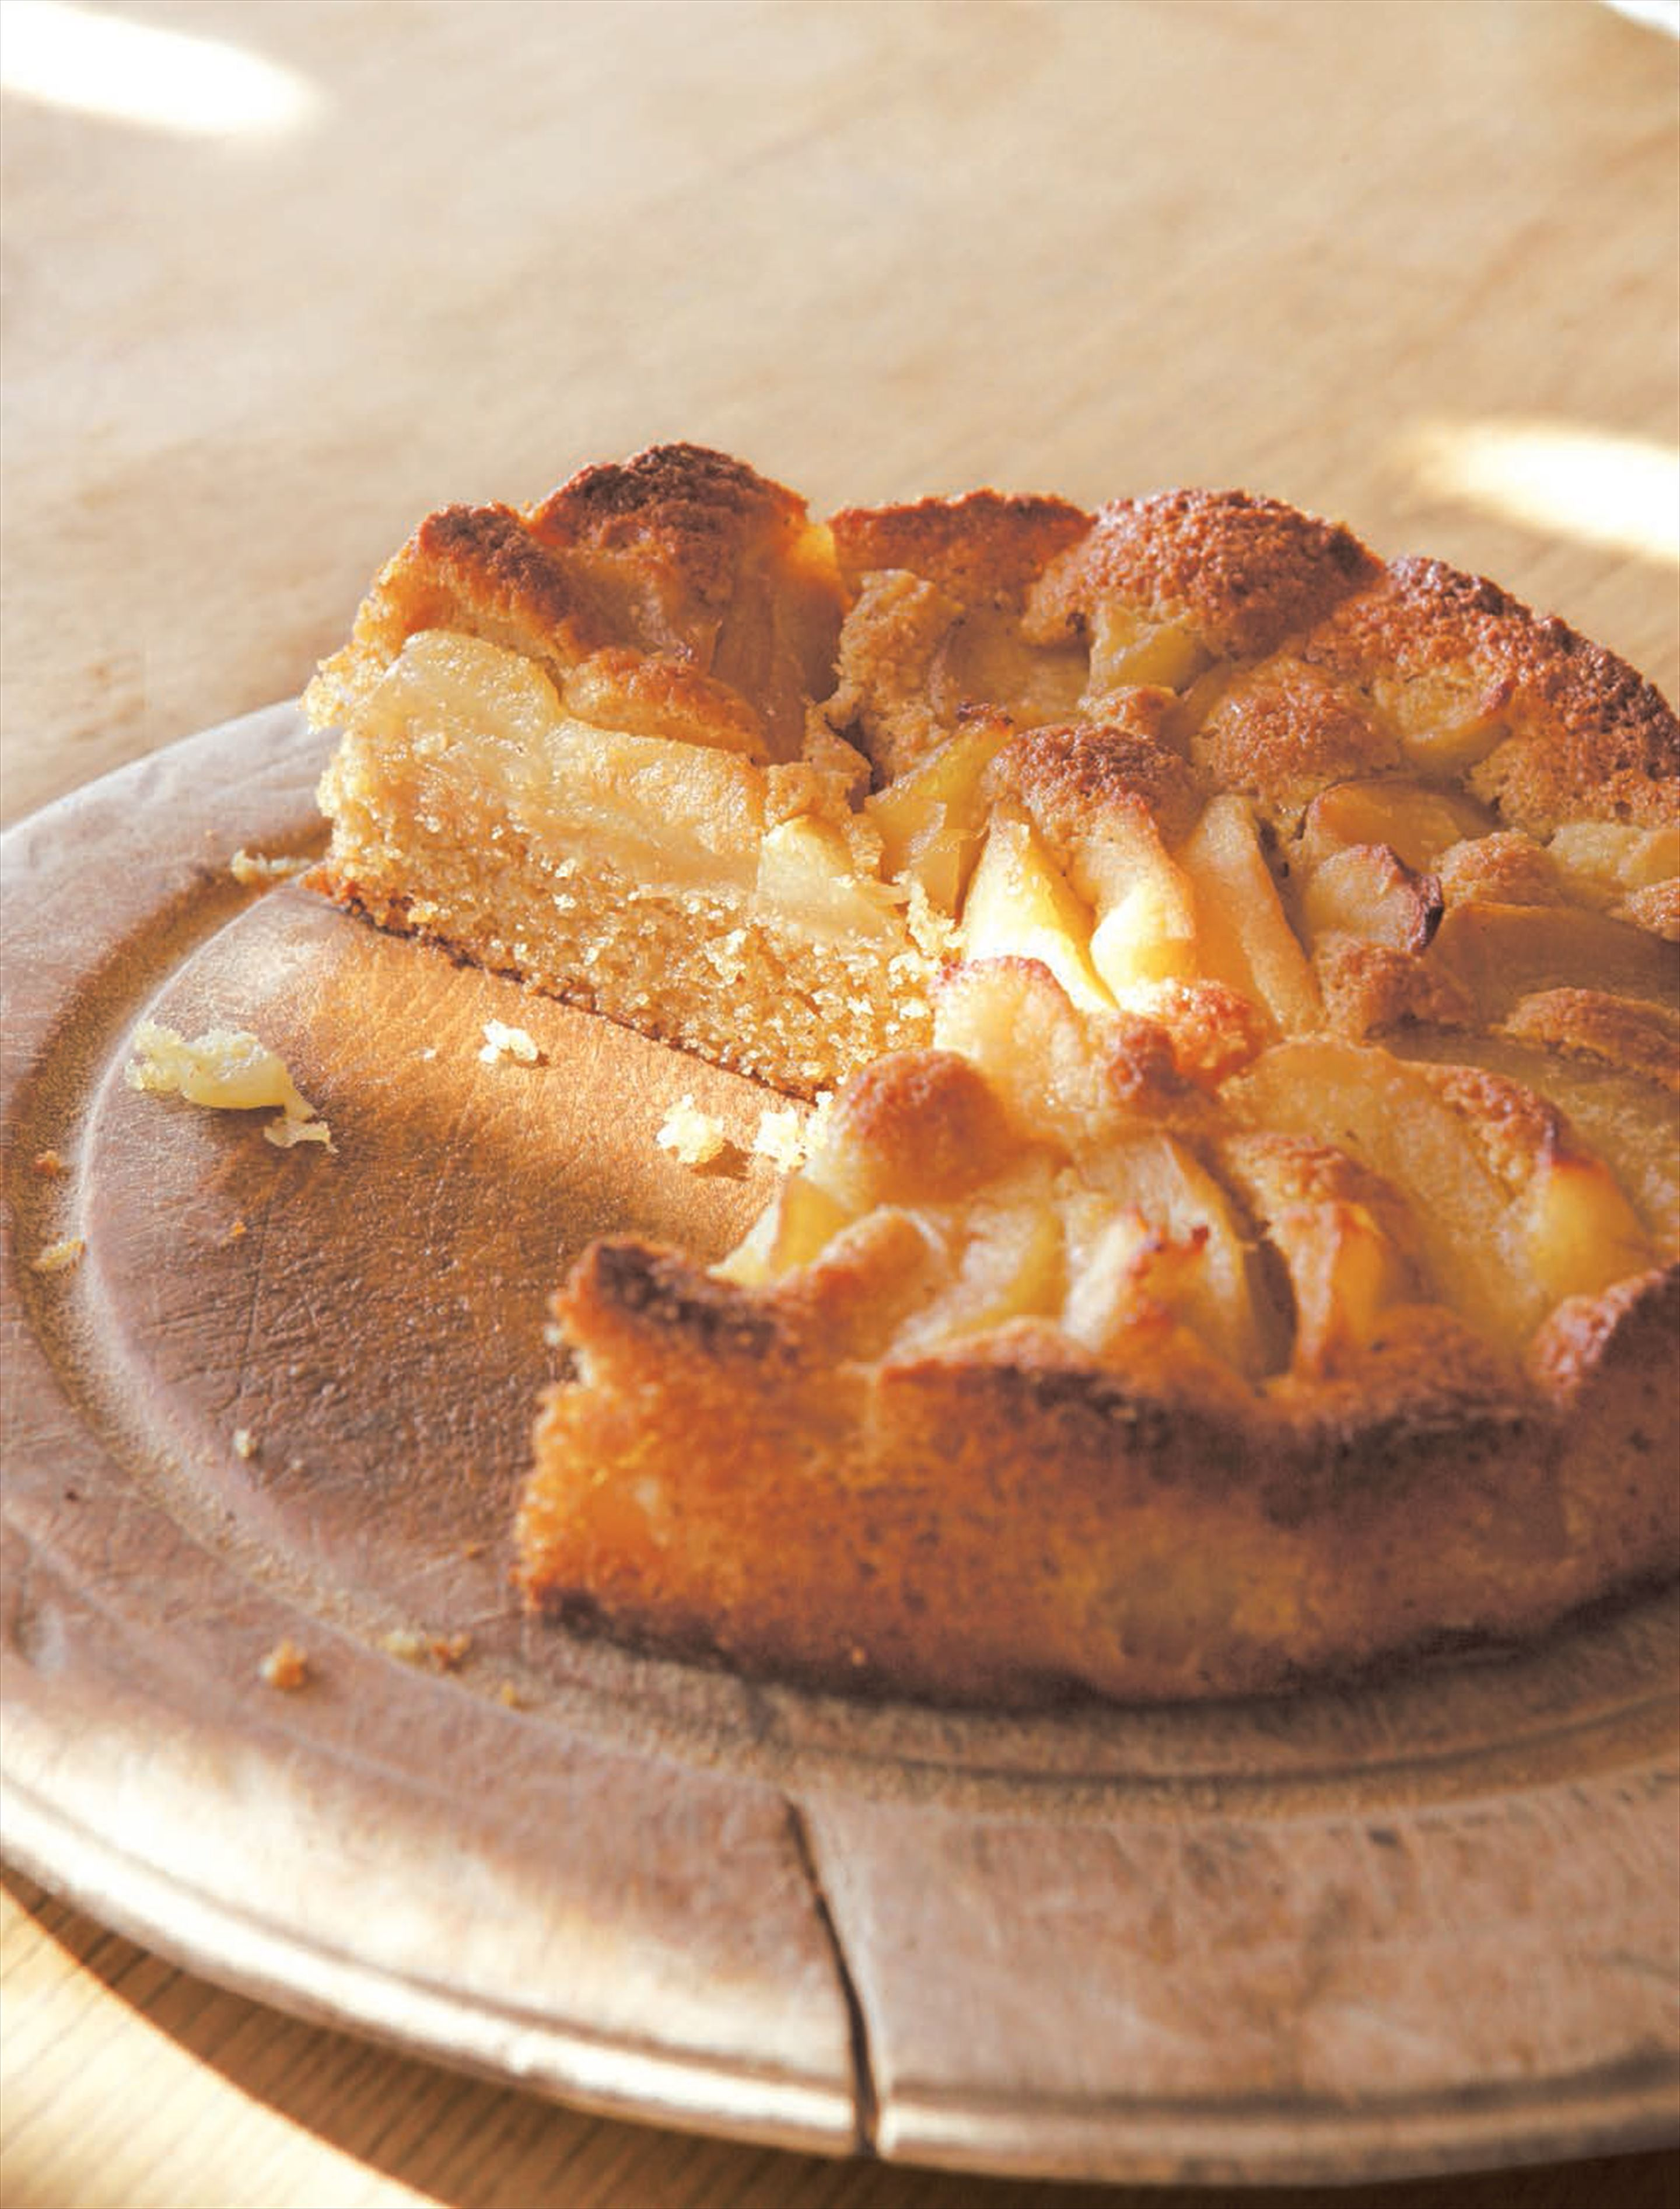 Apple and almond pudding cake